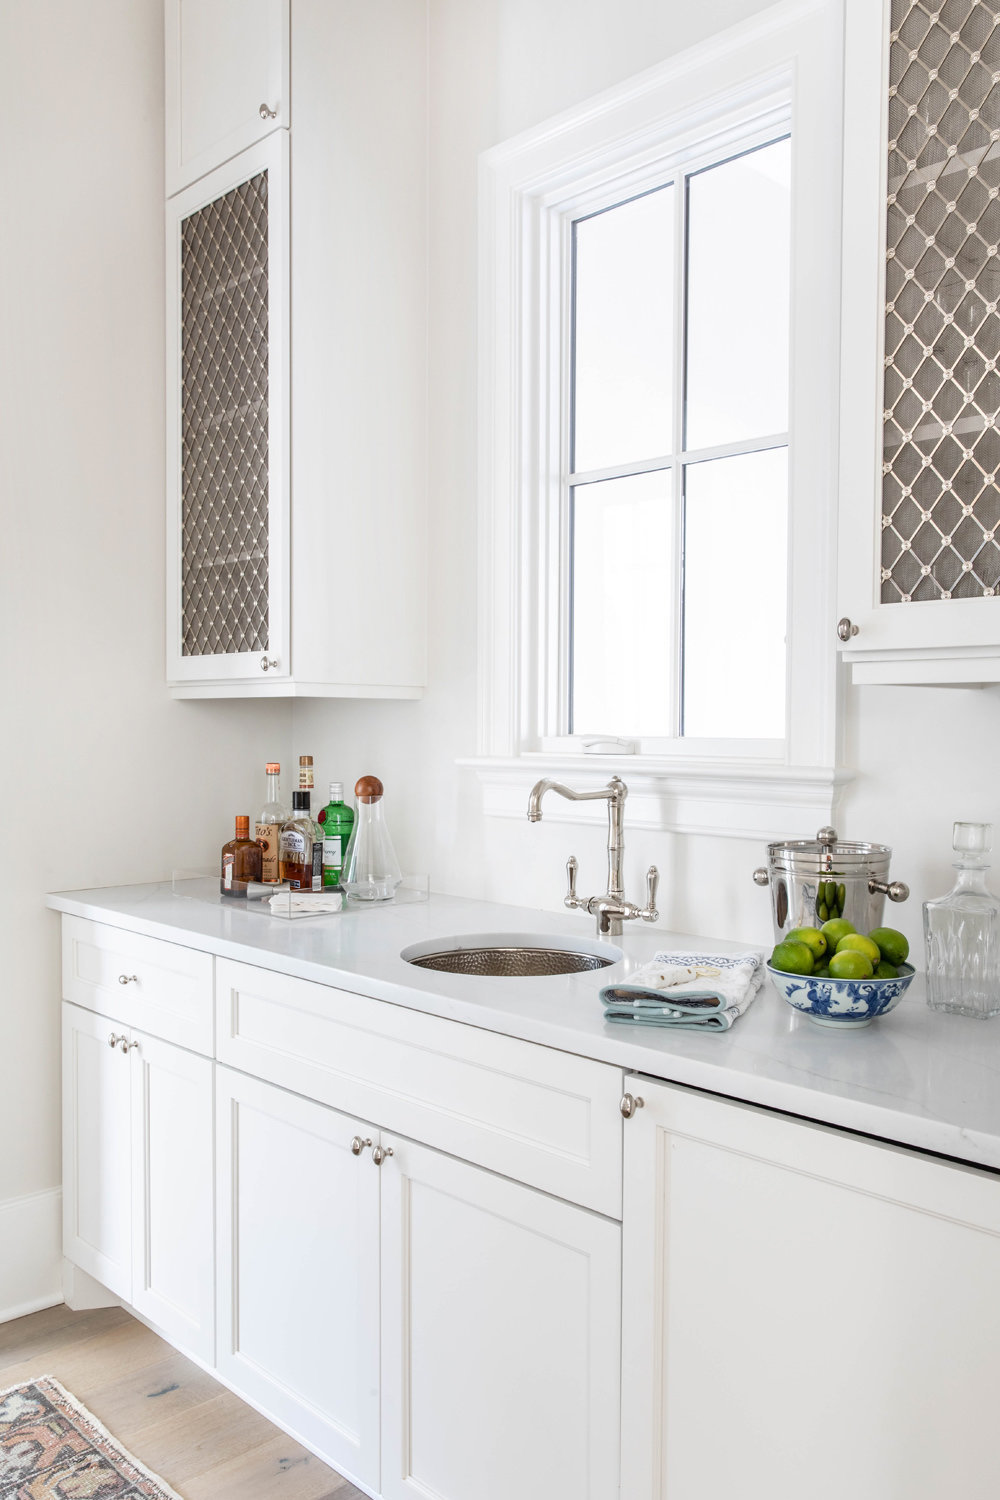 White-Inset-Cabinetry-Wet-Bar-with-Wire-Mesh-Insert-1